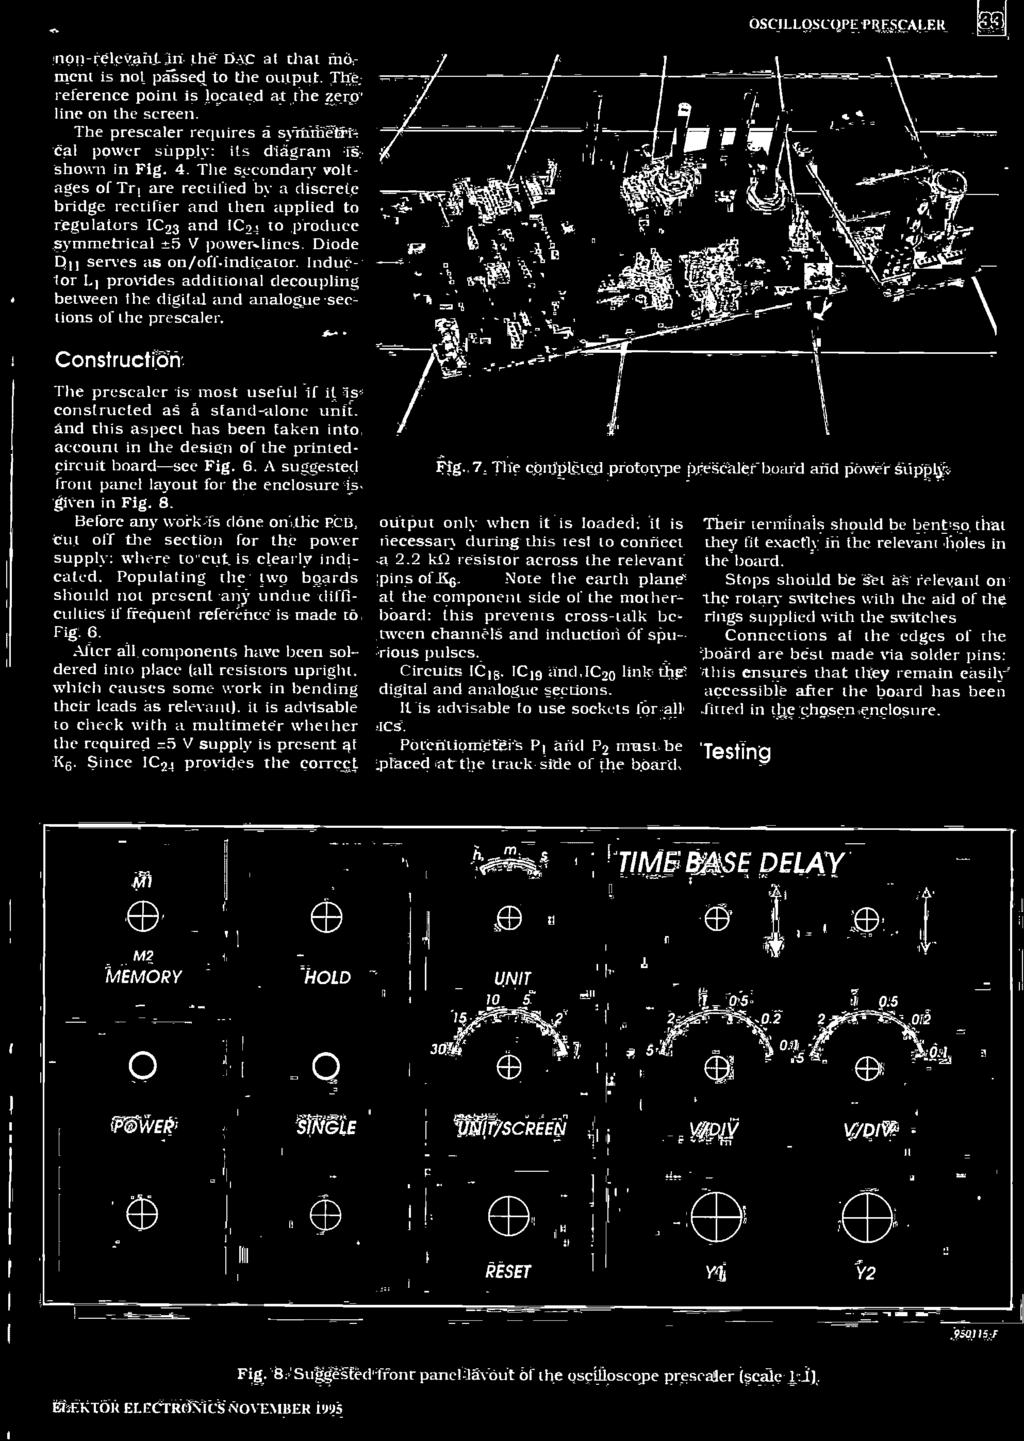 Audio Hi Fi Computers Microprocessors Design Ideas Radio The Scart Printed Circuit Board Is Copyright C Of Retro Gaming And This Aspect Has Been Taken Into Account In